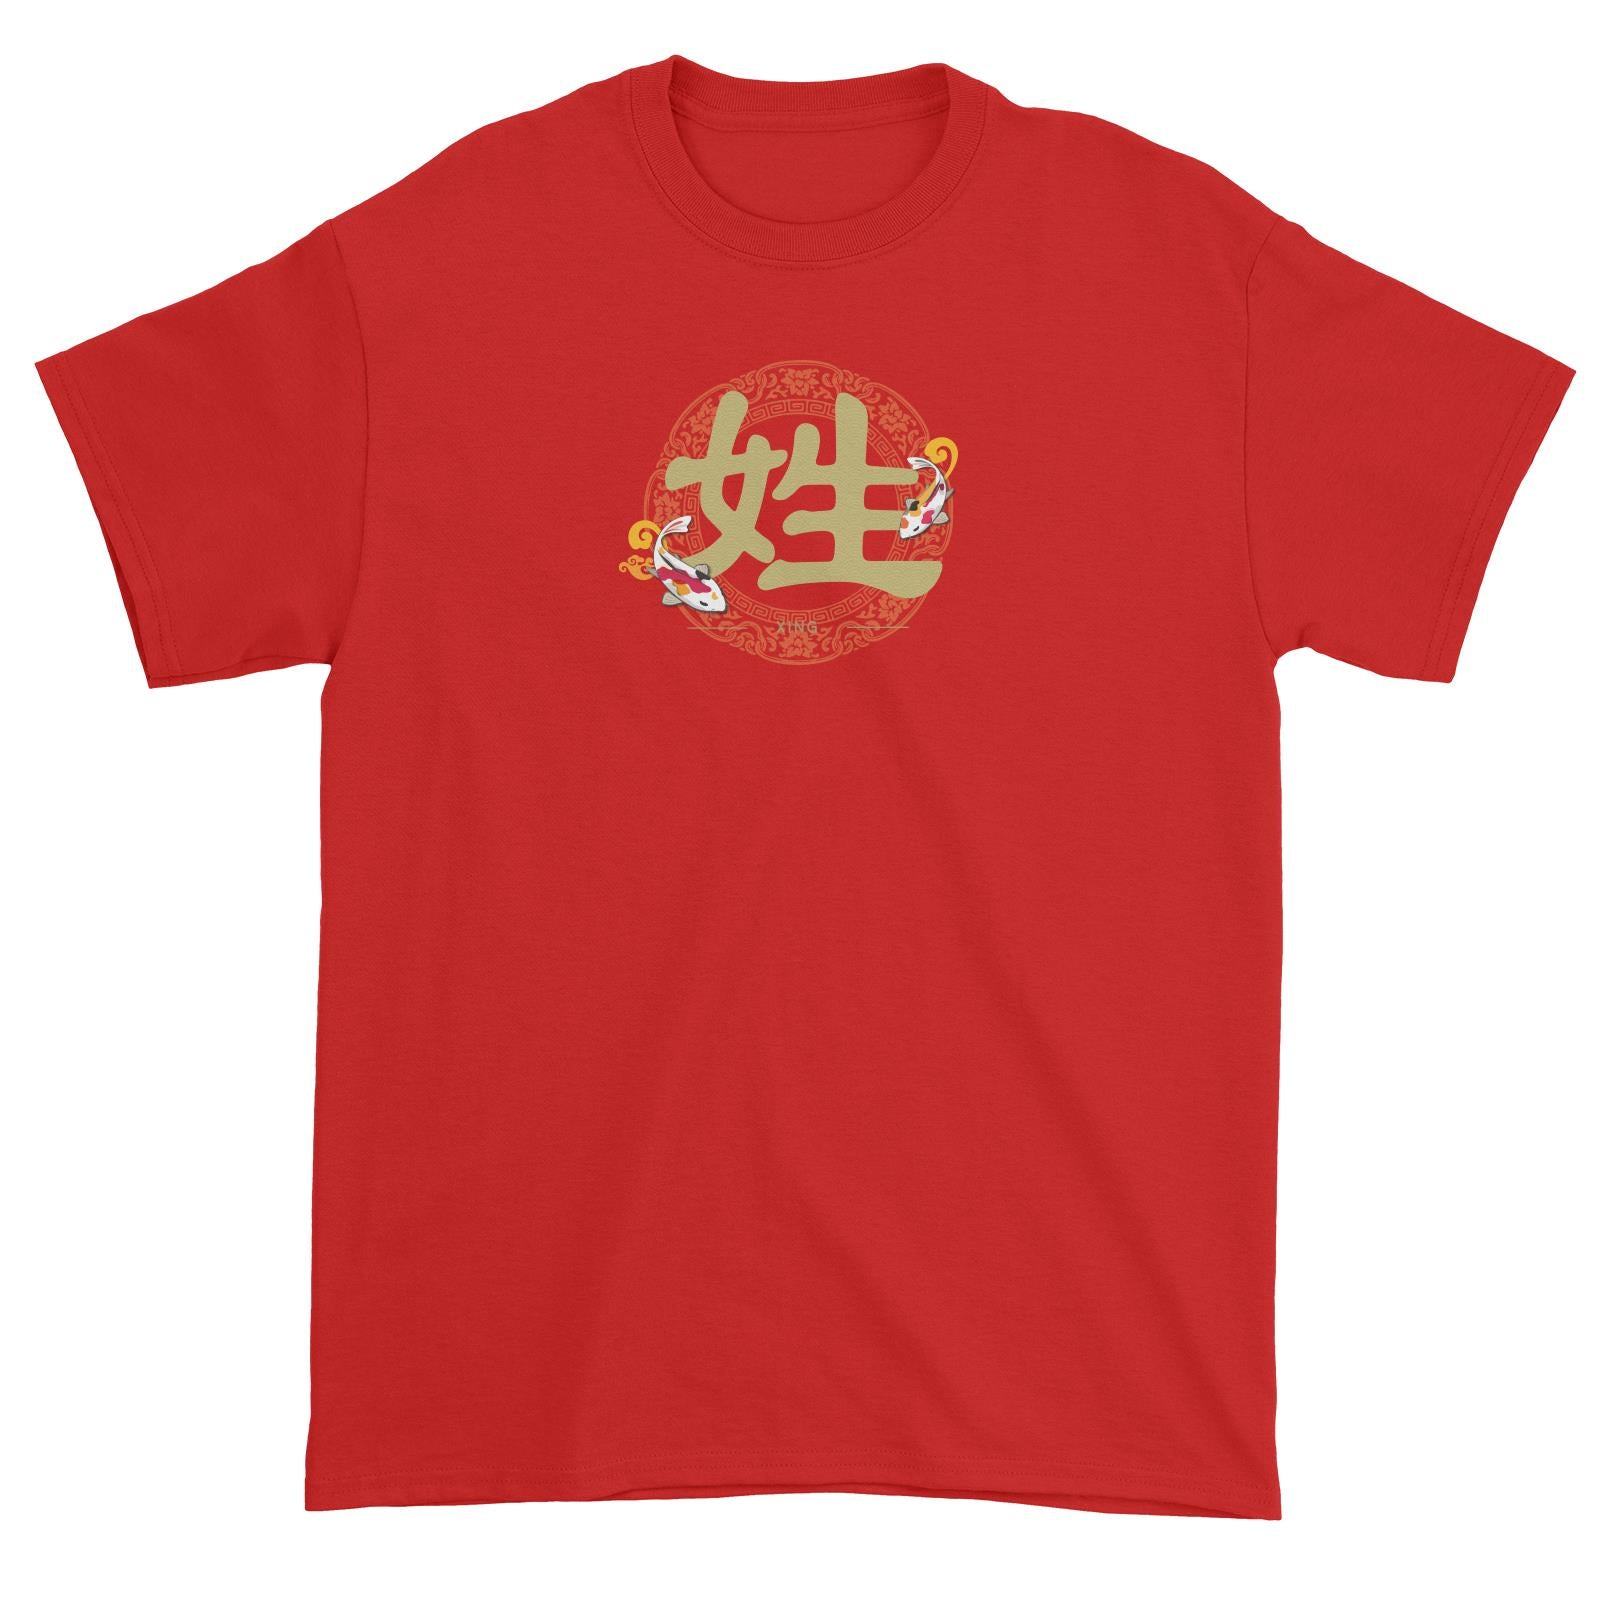 Chinese New Year Patterned Fish Surname with Floral Emblem Unisex T-Shirt  Personalizable Designs